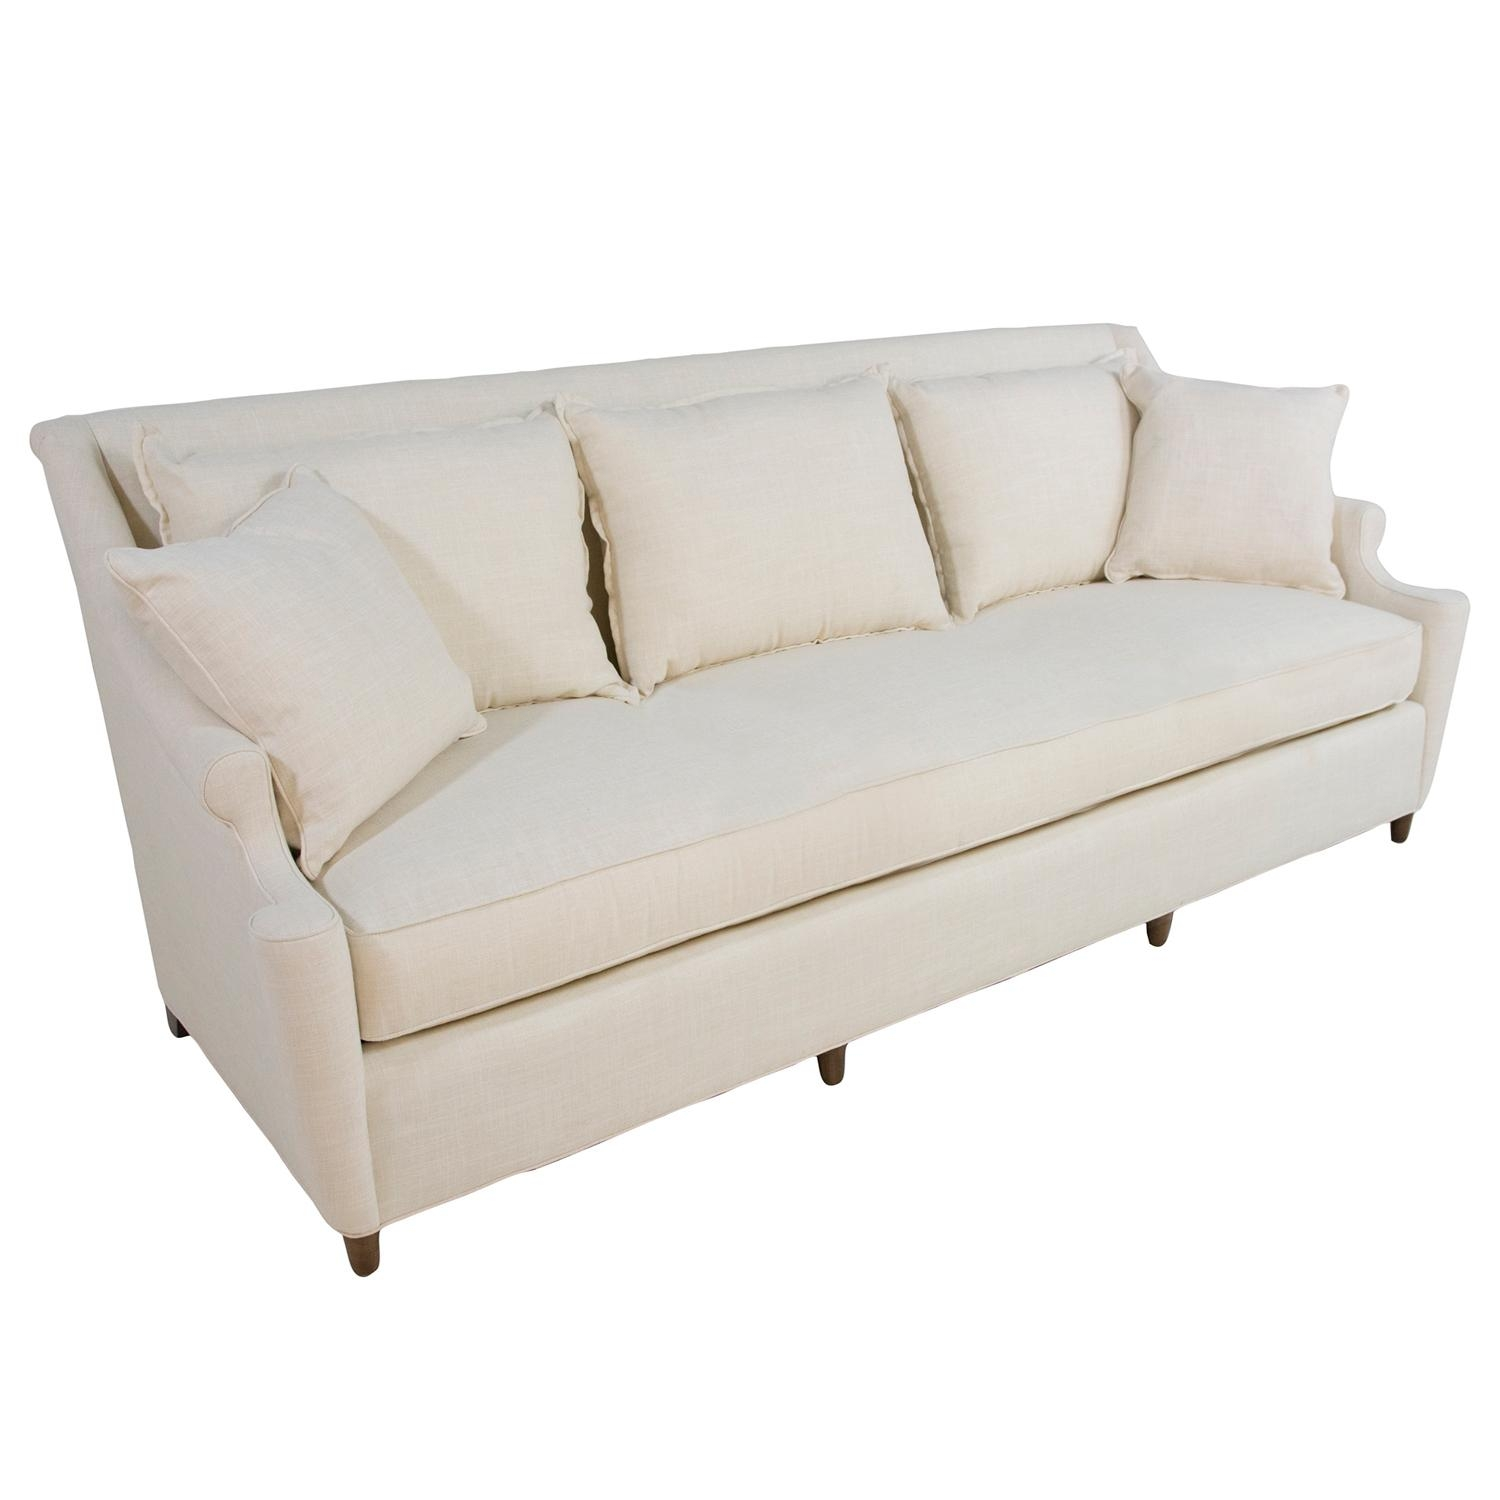 Gabby Furniture Theo Bench Cushion Sofa Within Bench Cushion Sofas (Image 11 of 20)